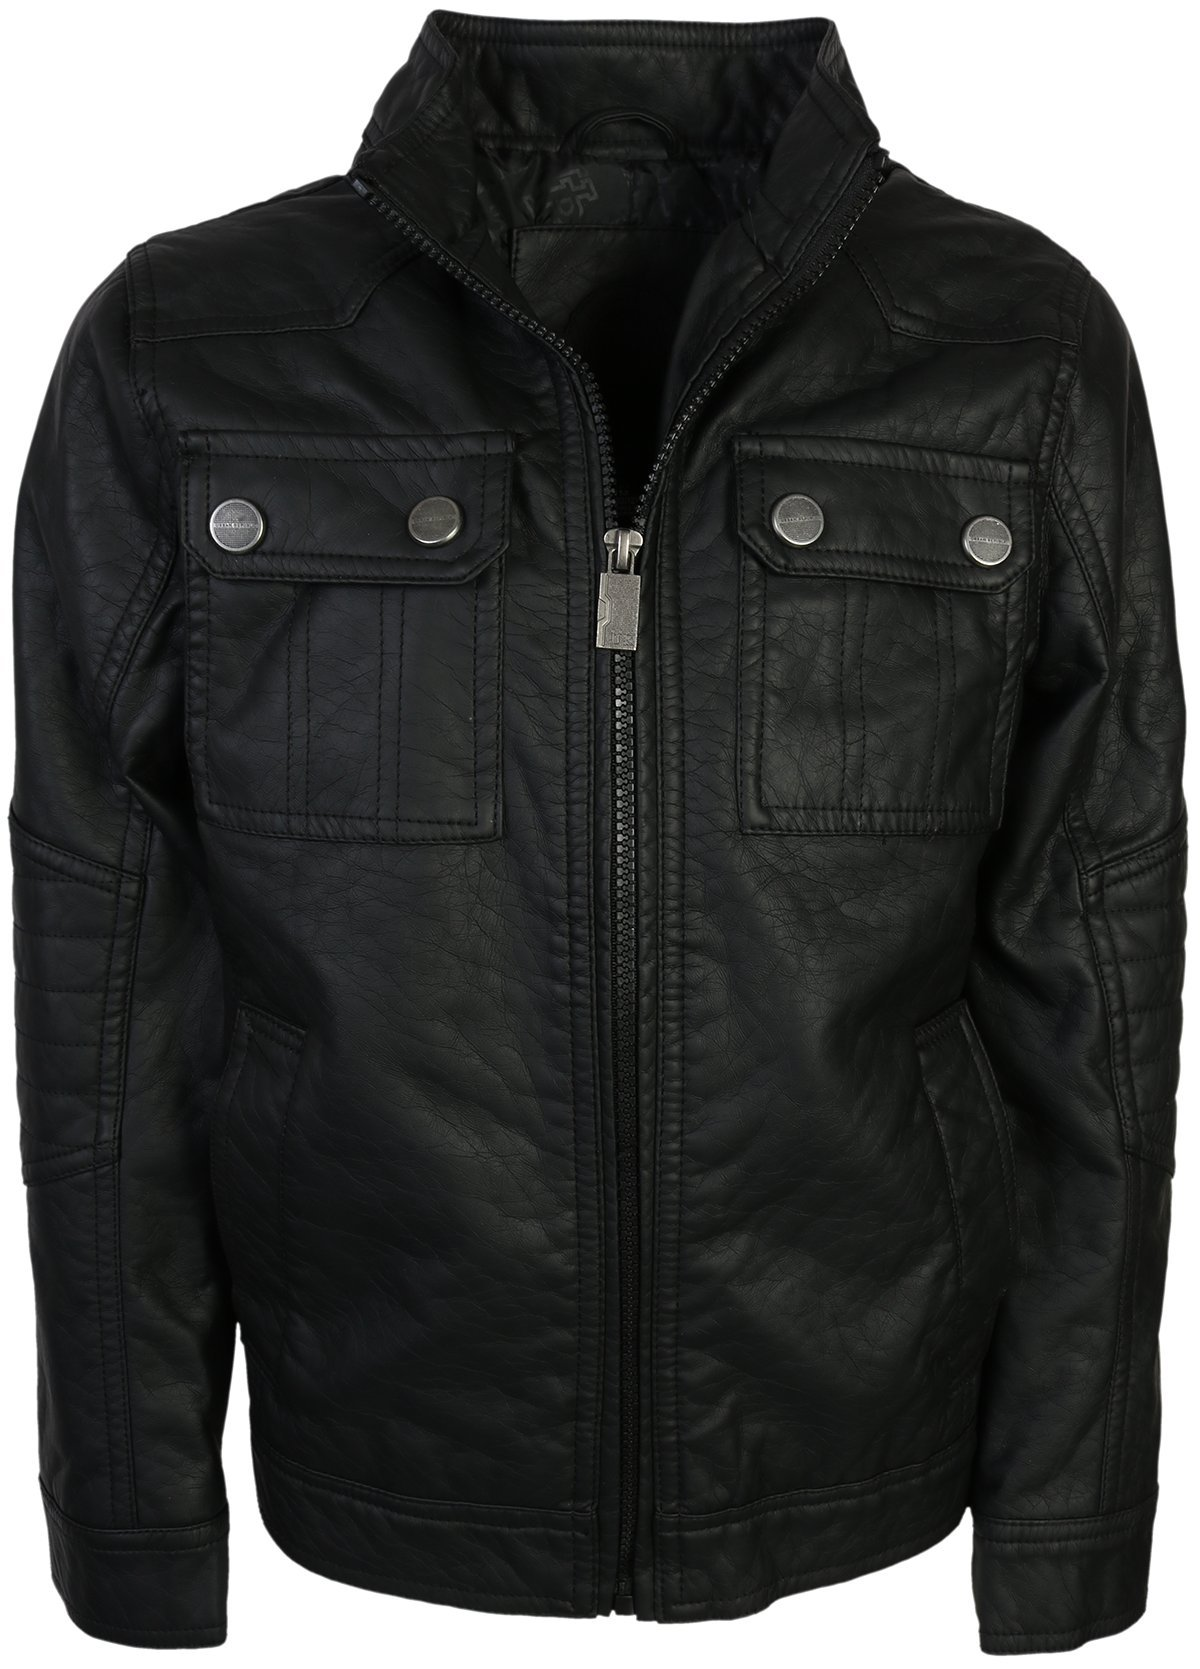 Urban Republic Boy's Faux Leather Officer Jacket, Black, Size 8' by Urban Republic